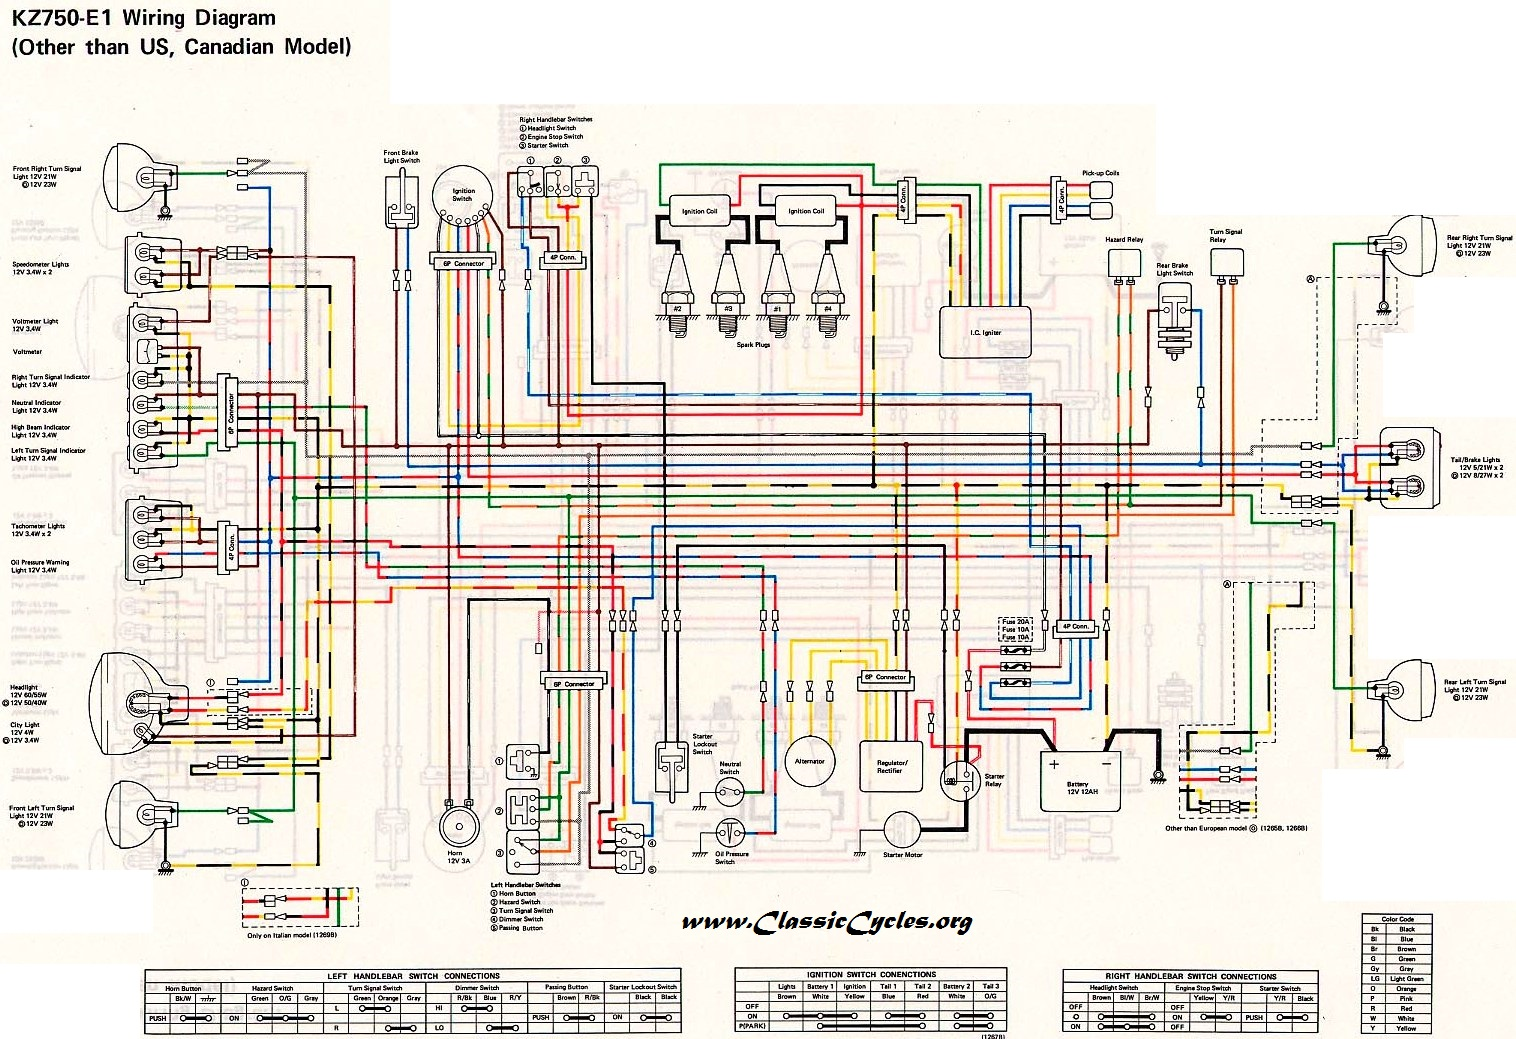 Enjoyable Kawasaki Bayou 400 Wiring Diagram Basic Electronics Wiring Diagram Wiring Cloud Timewinrebemohammedshrineorg